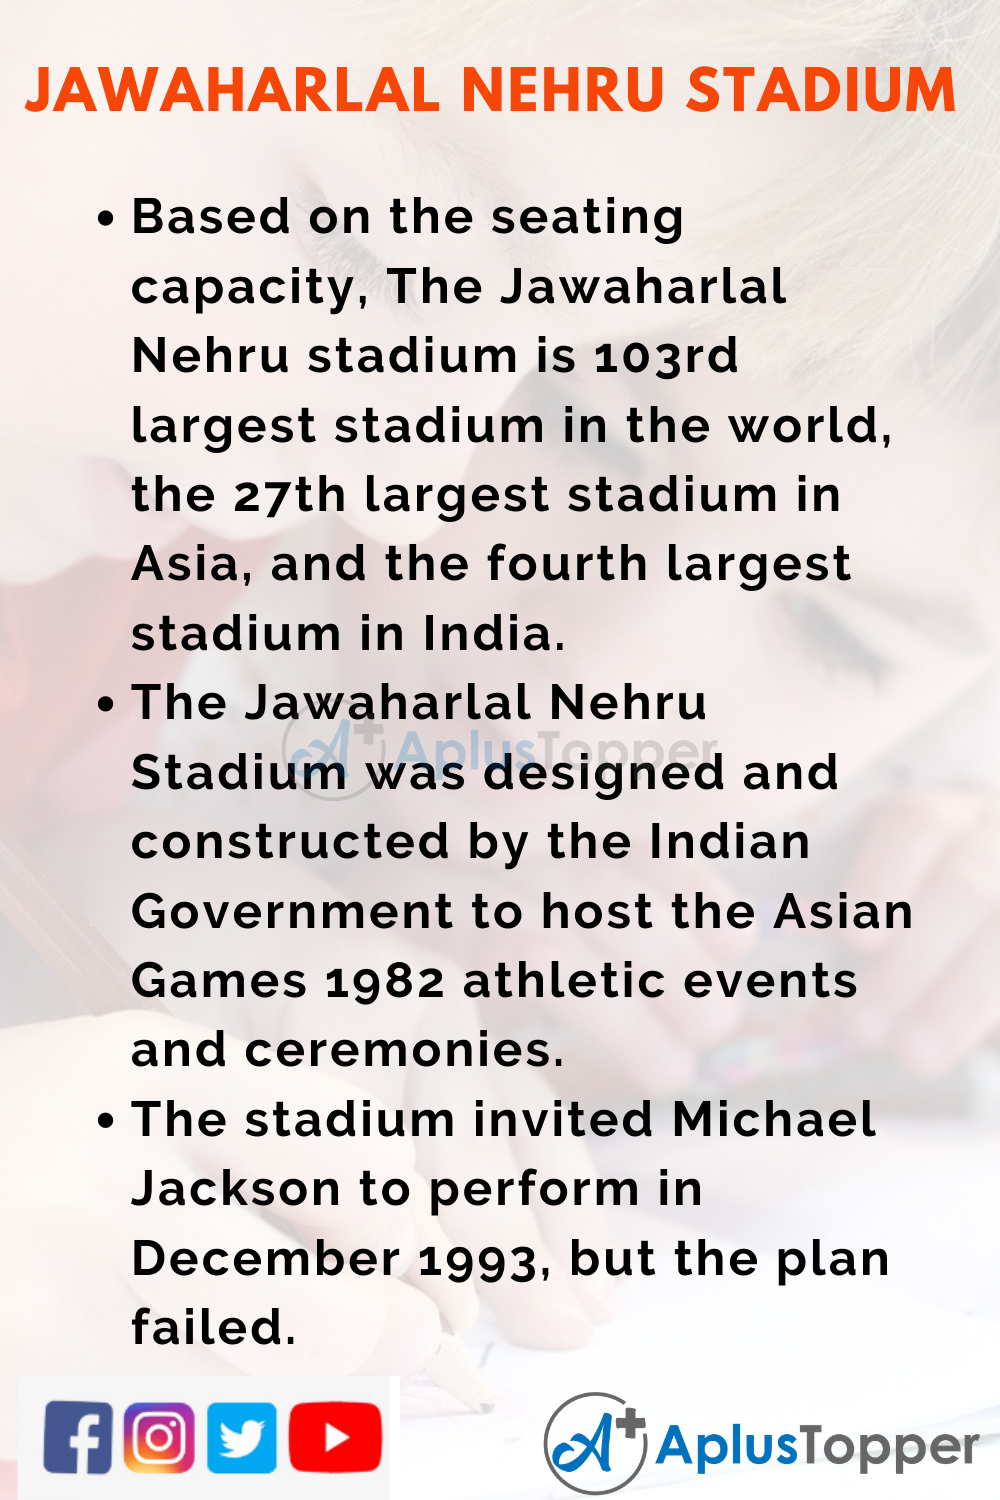 10 Lines on Jawaharlal Nehru Stadium for Higher Class Students